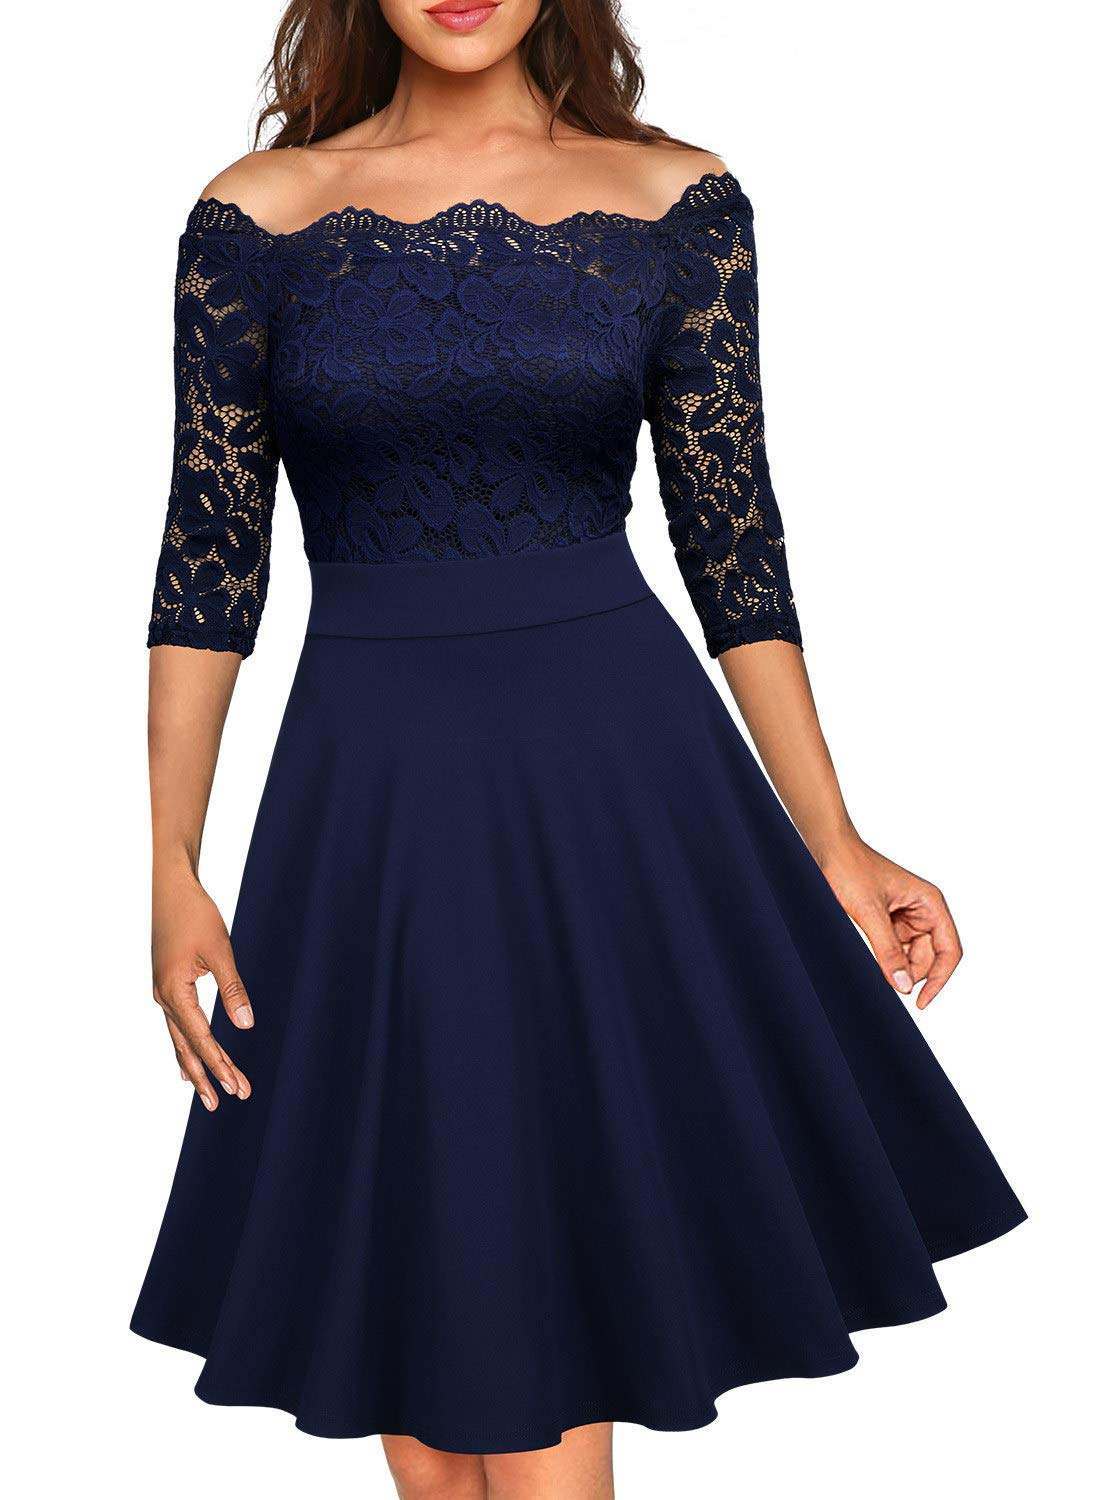 Wedding Guest Dresses - Women's Vintage Floral Lace Bridesmaid Party Dress